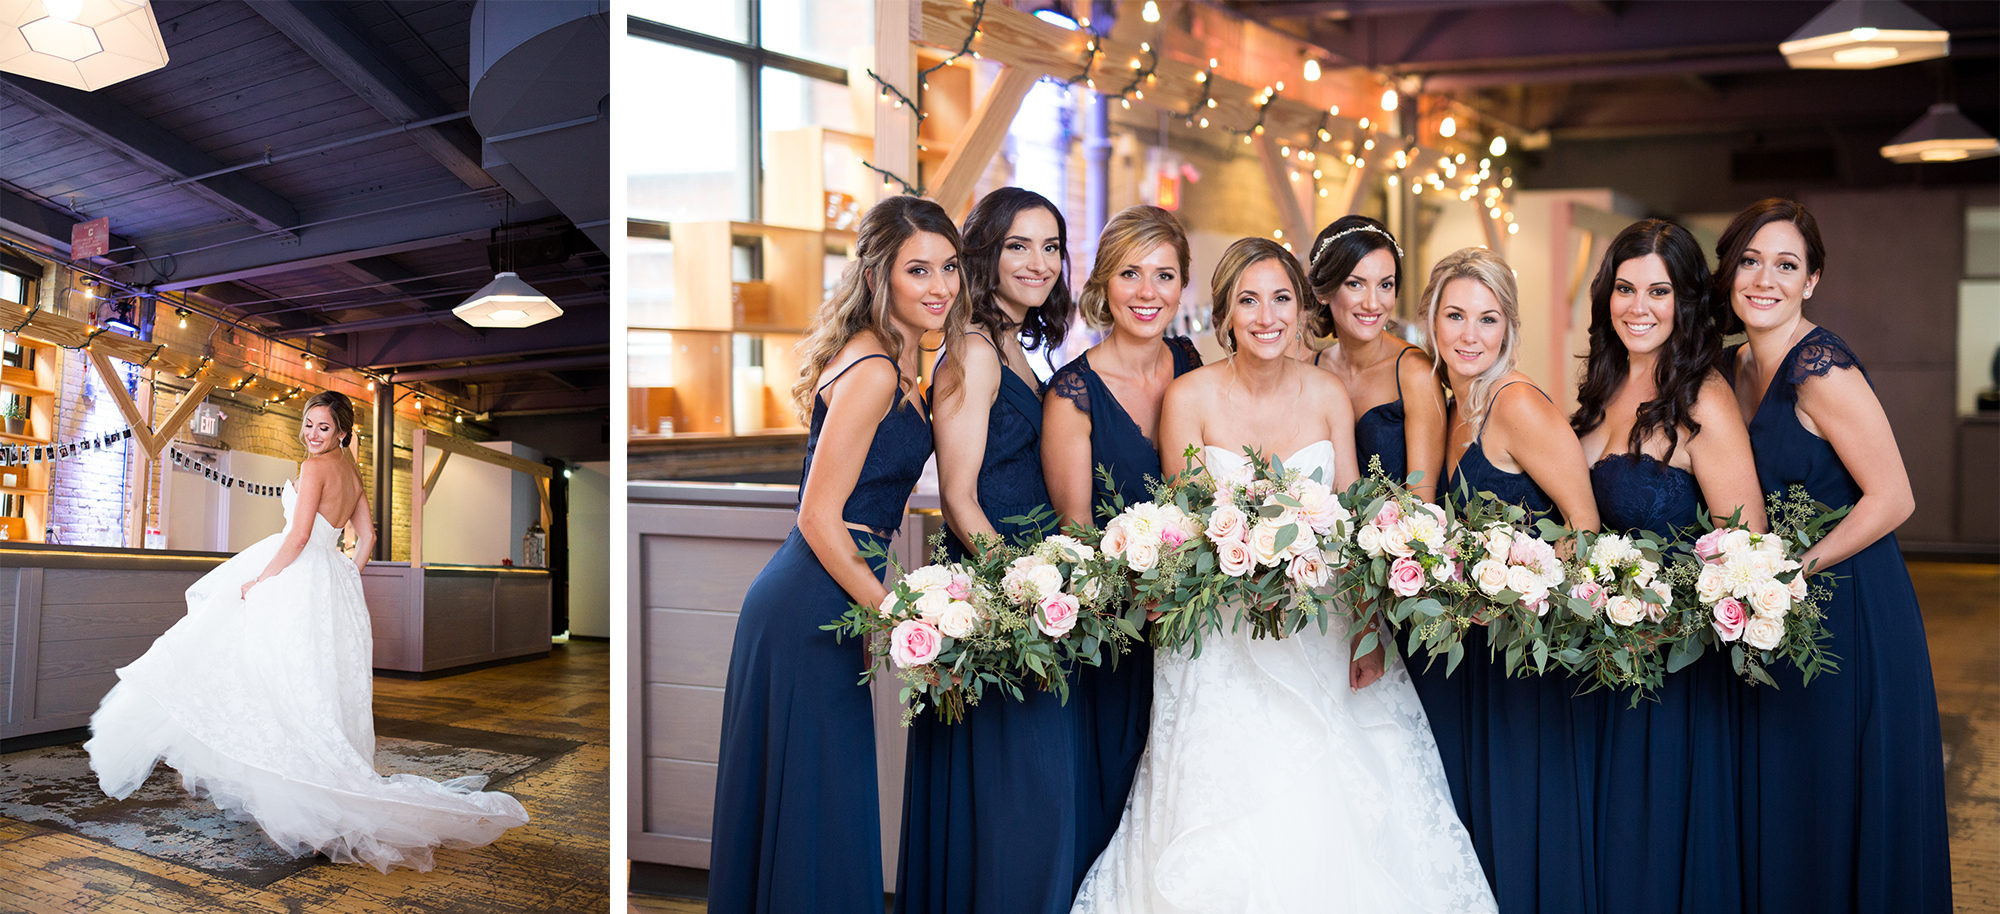 Bridesmaids Hayley Paige Zsuzsi Pal Photography Toronto Wedding 2nd Second Floor Events